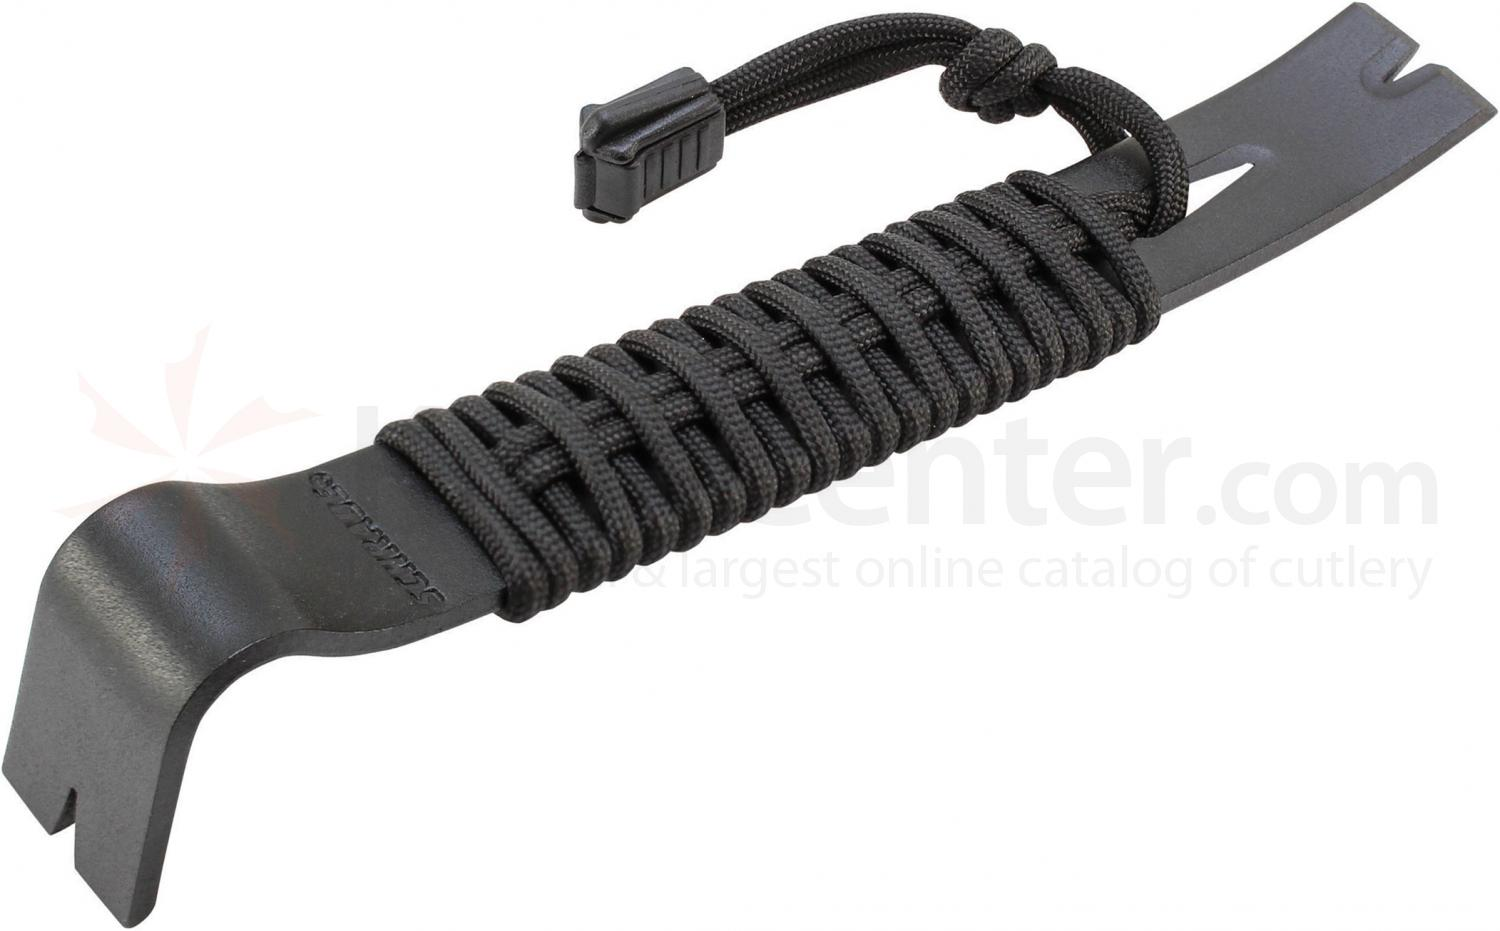 Schrade SCHPB1BK Pry Bar, Black Powder Coated SK5 Steel, 7.5 inch Overall, Paracord Handle